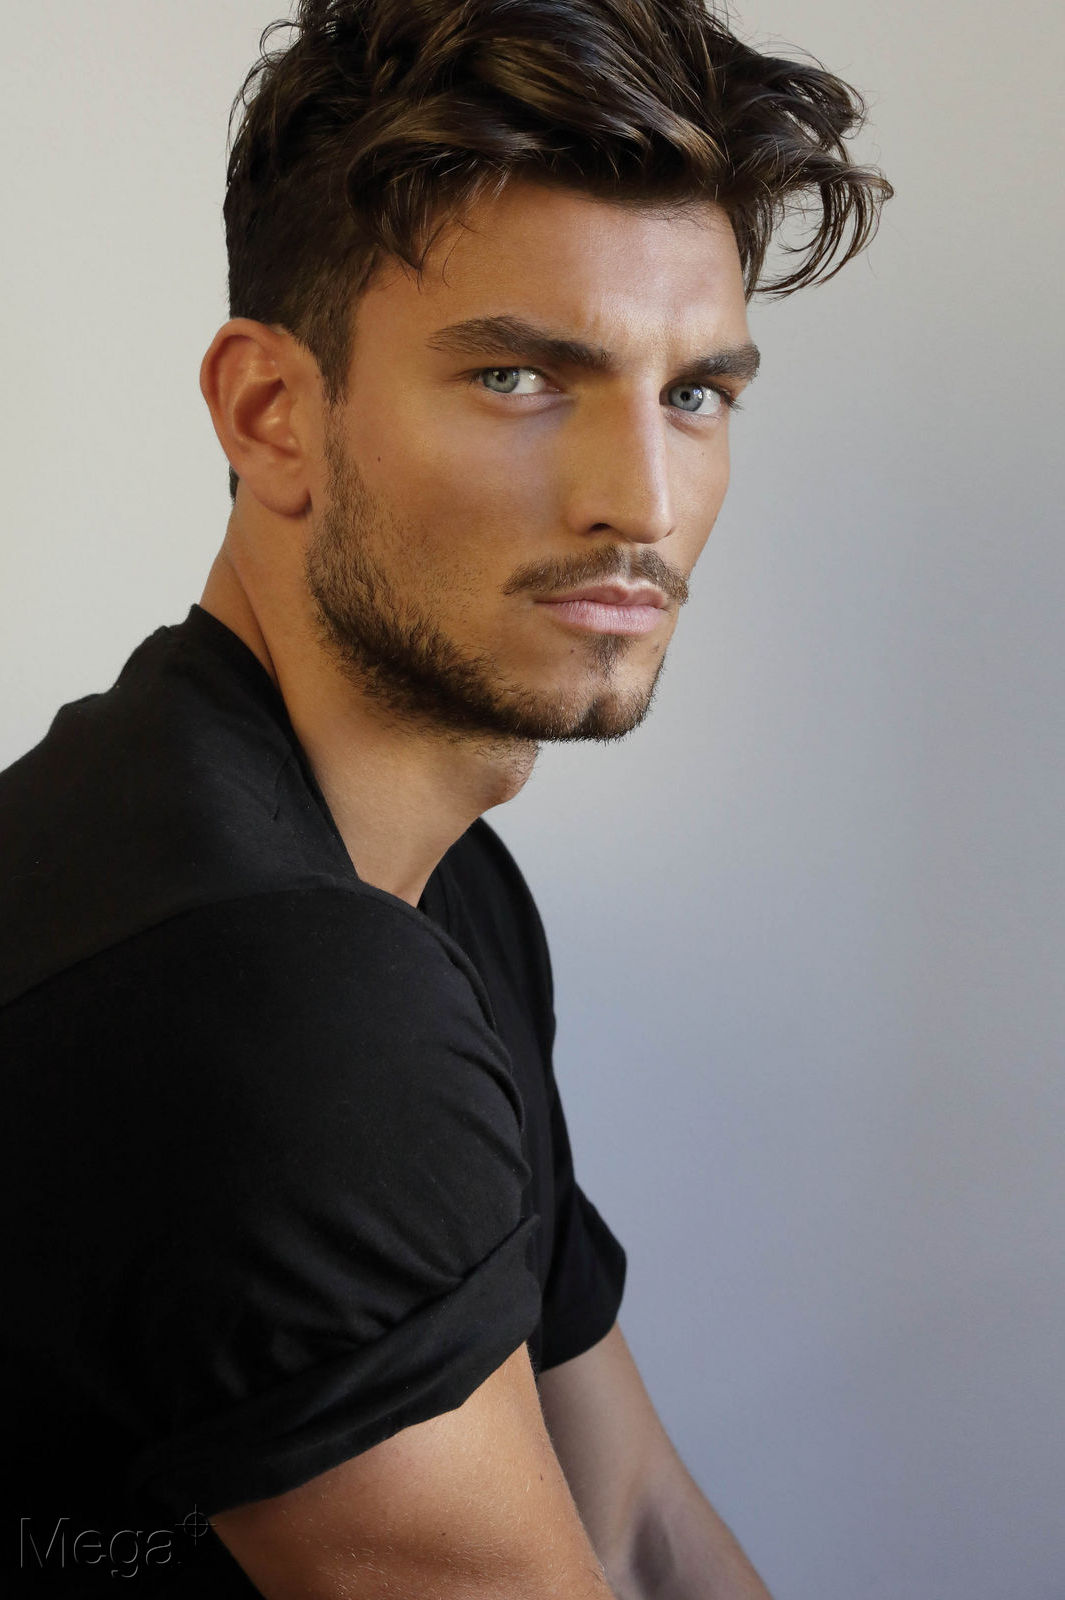 Marco Fantini - Mega Model Agency